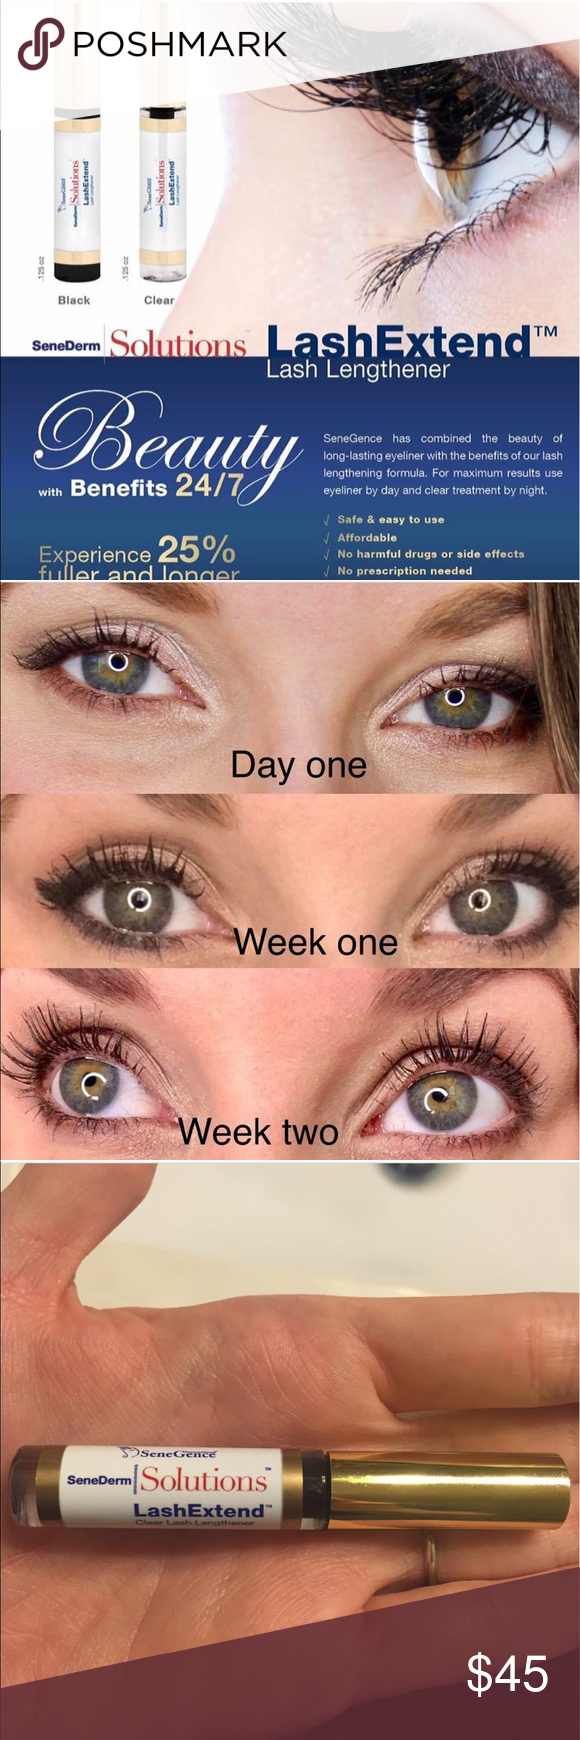 Senegence lash extend in black or clear Sell makeup